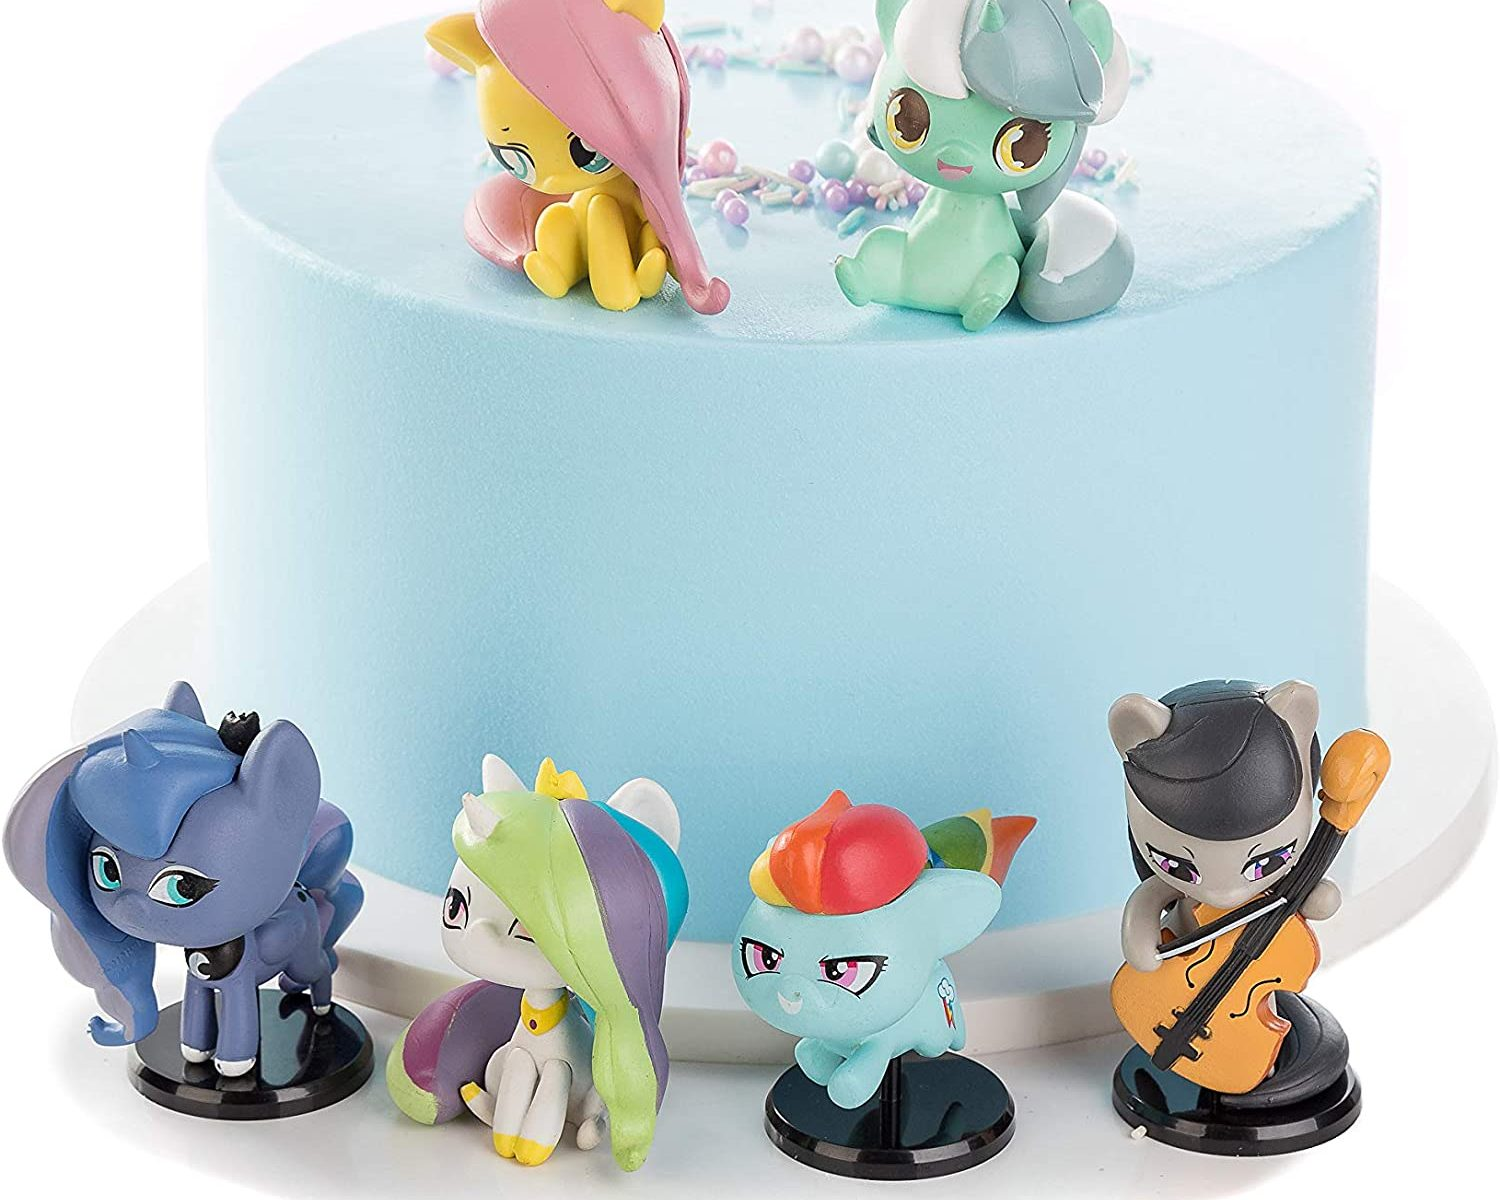 MLP Cake Topper Character Figure 5-pack 1